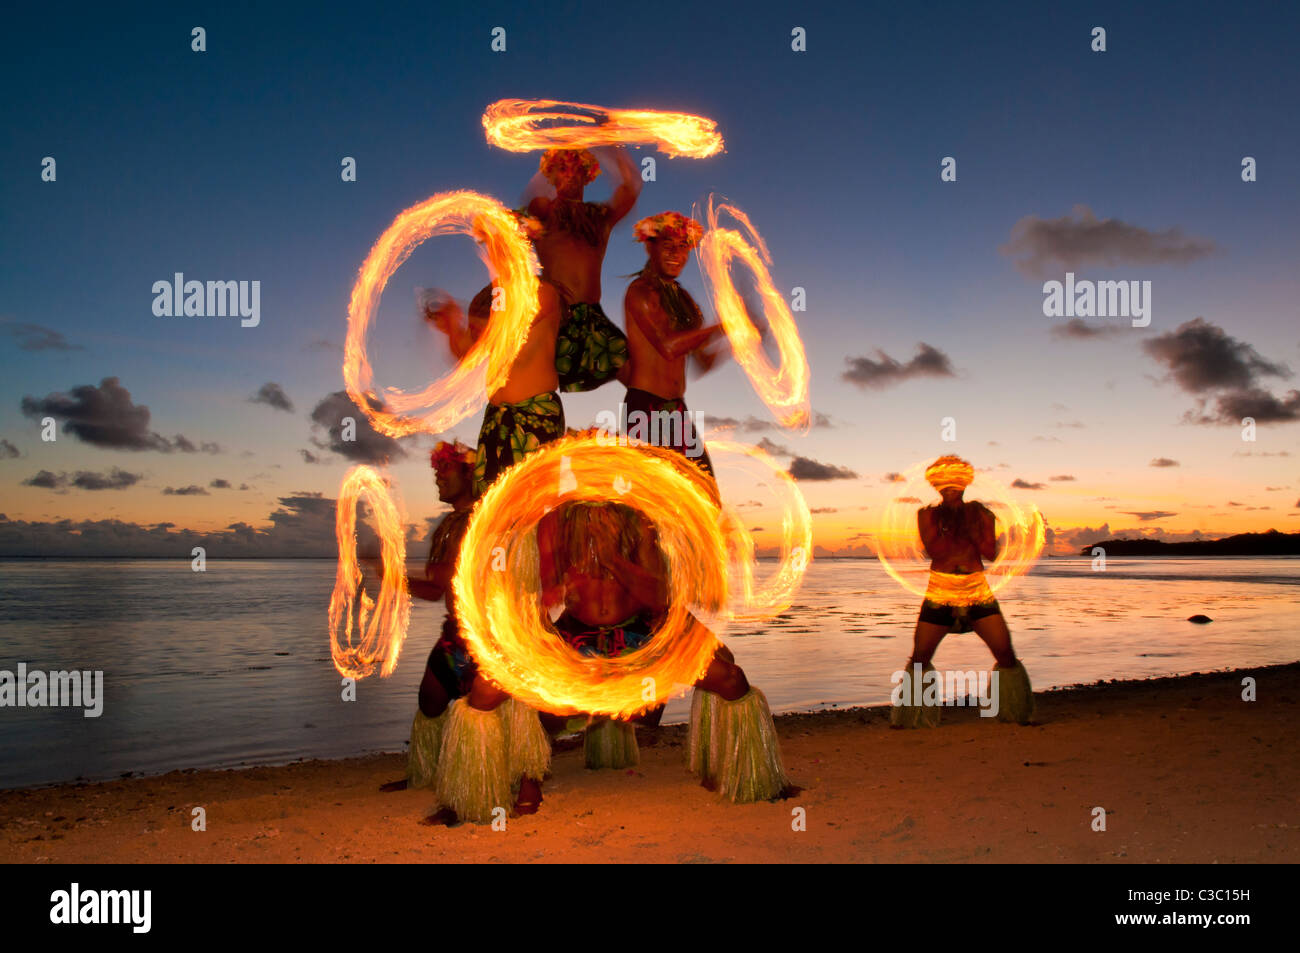 Fire Dance performance at Shangri-La Resort, Coral Coast, Viti Levu Island, Fiji. - Stock Image